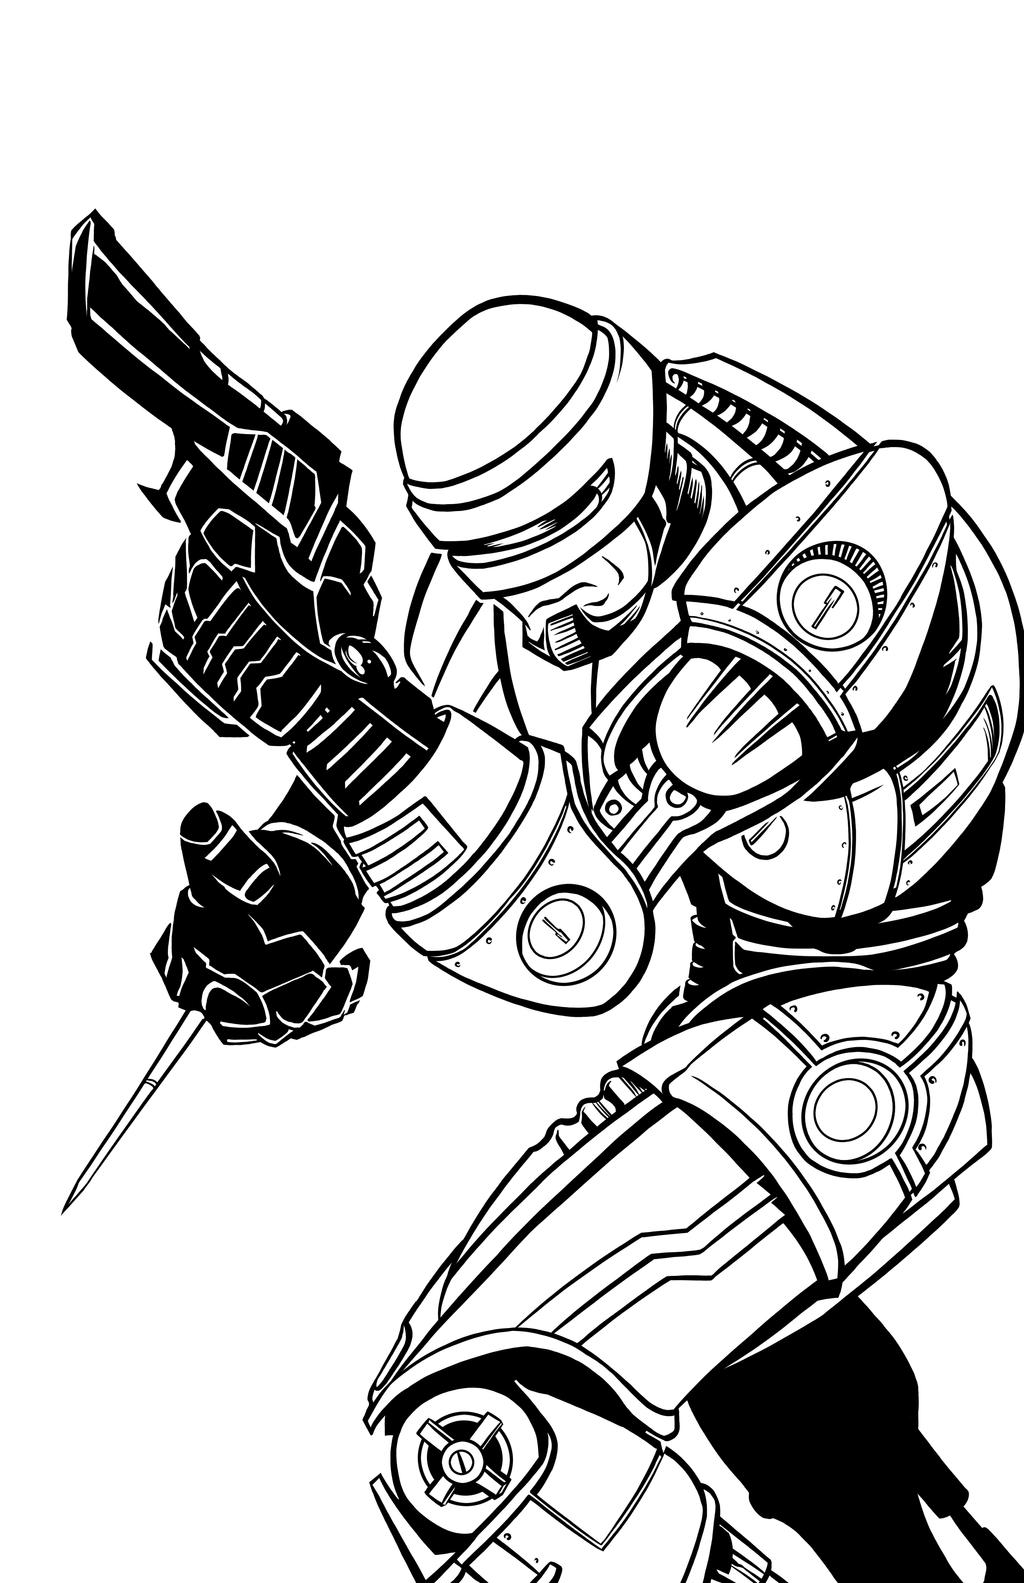 robocop coloring pages - photo#31